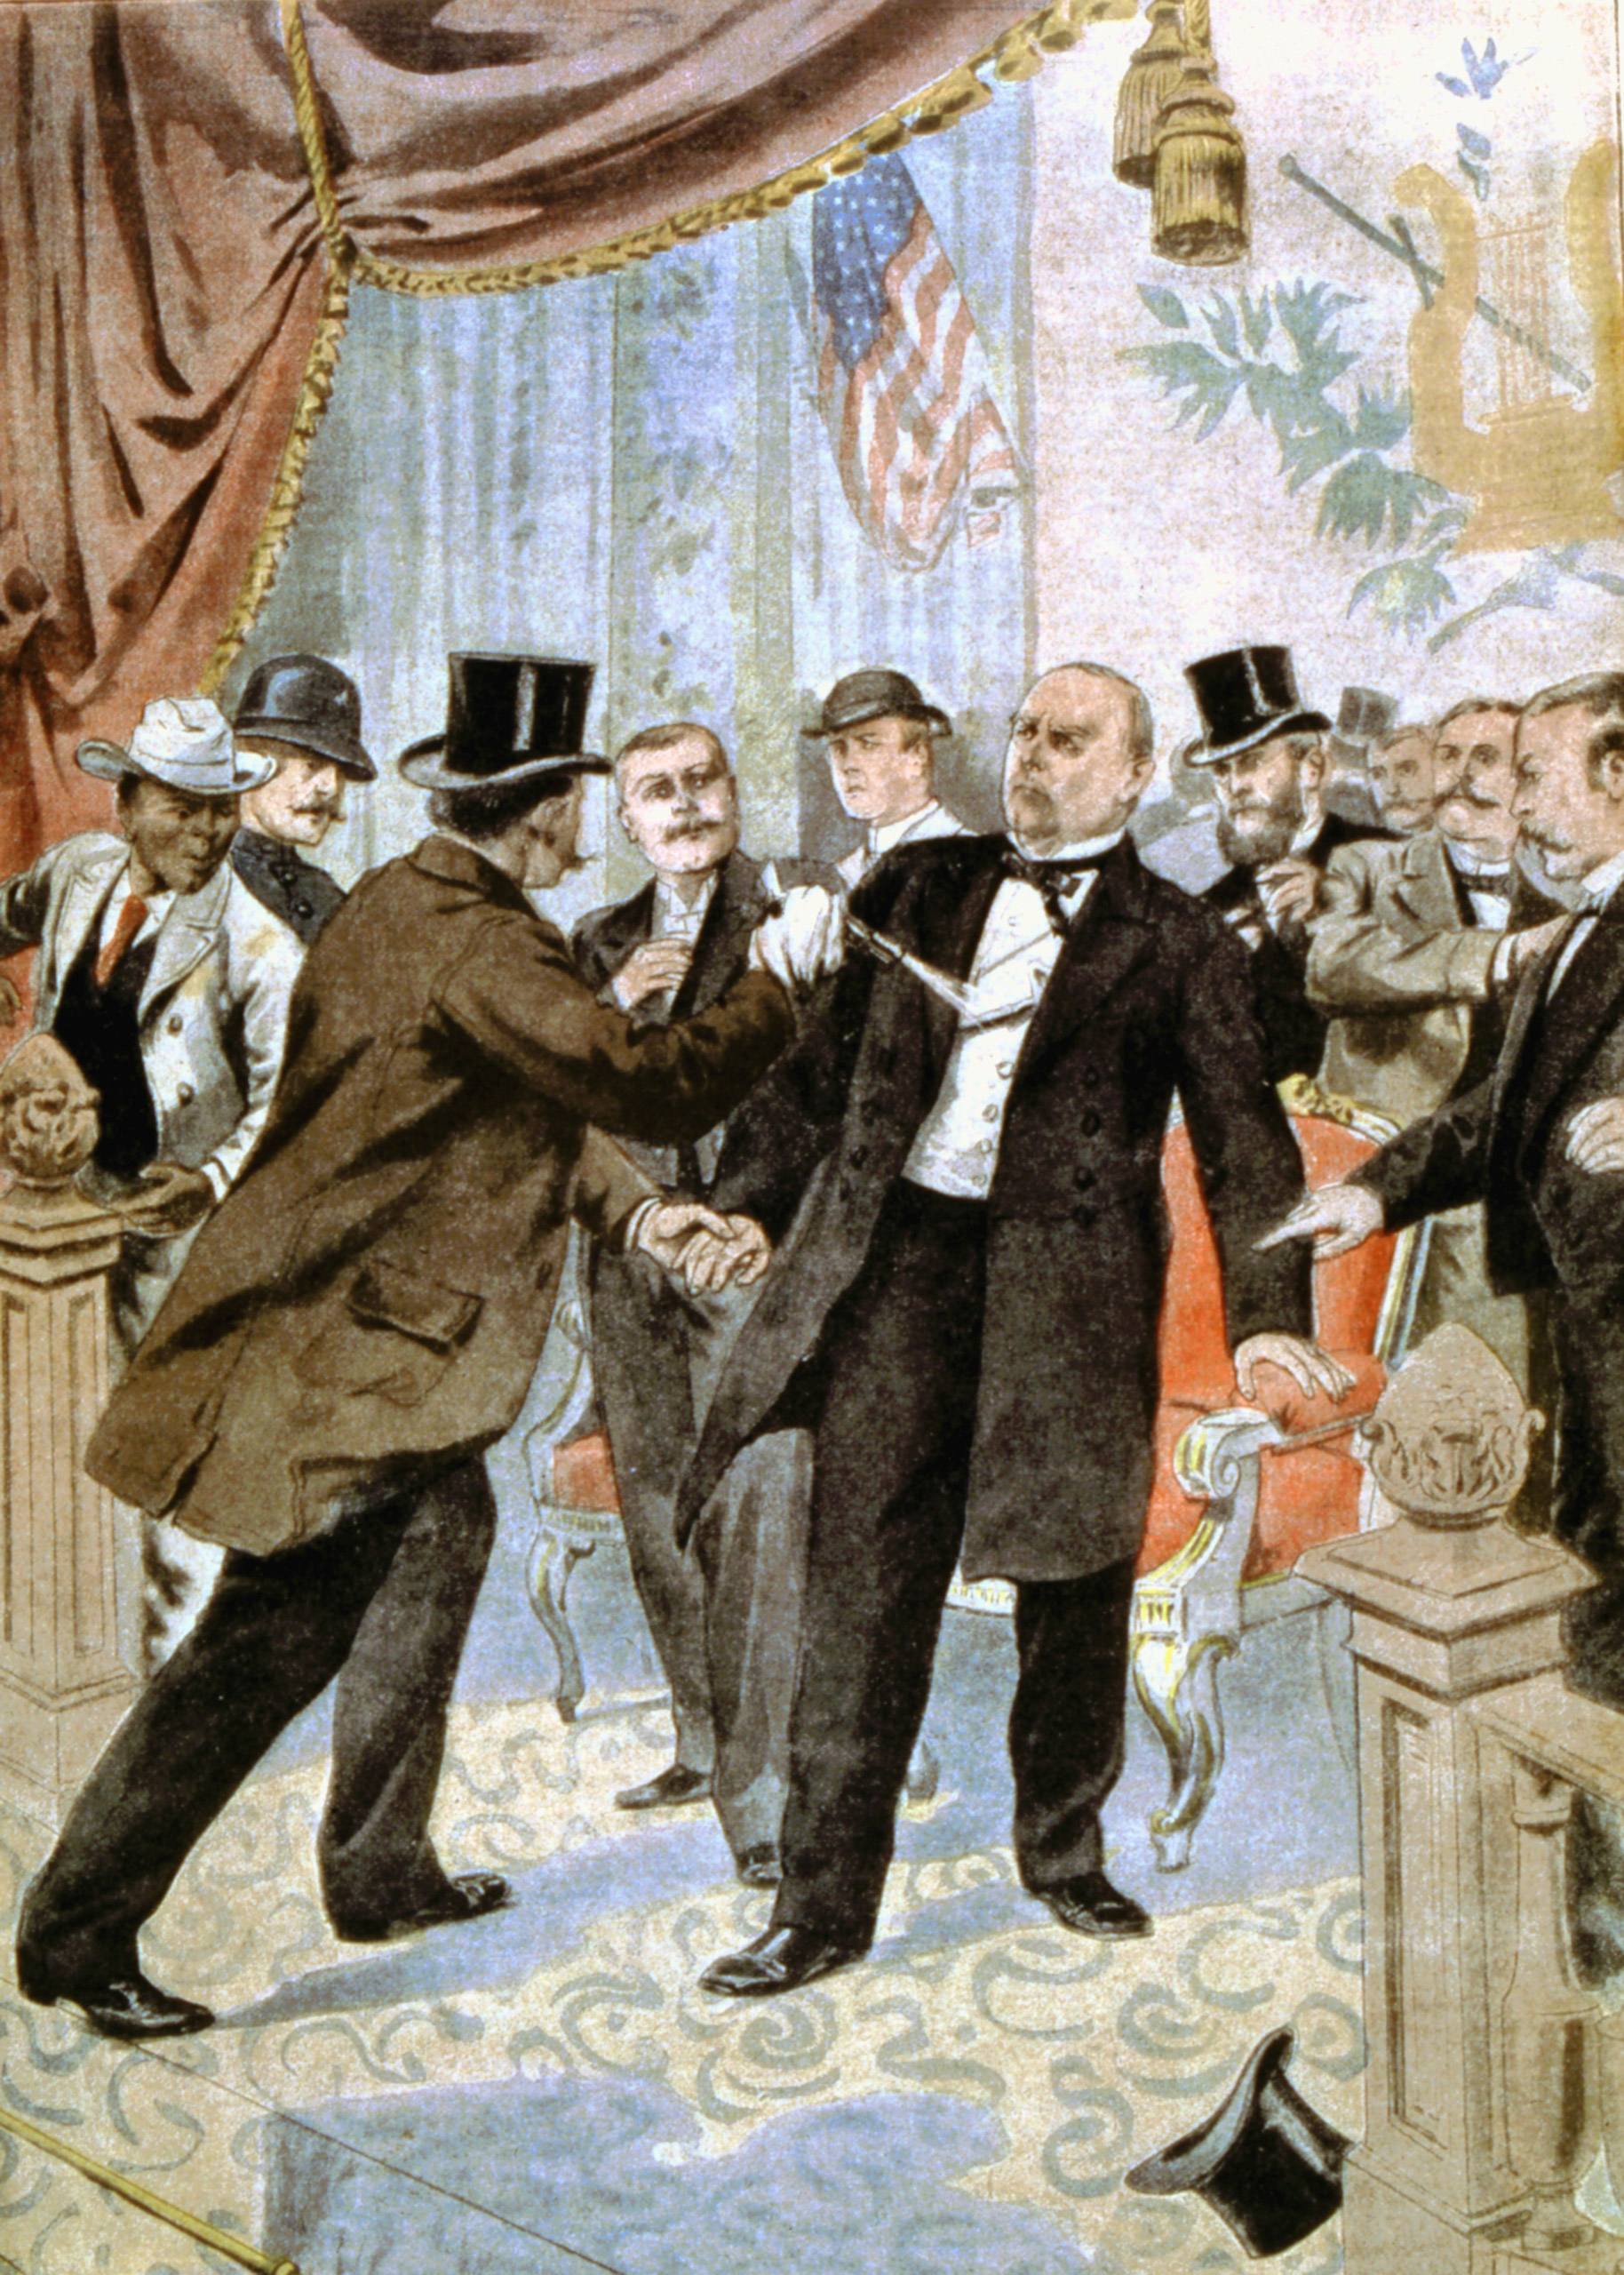 Assassination of William McKinley, 25th president of the USA, 1901.